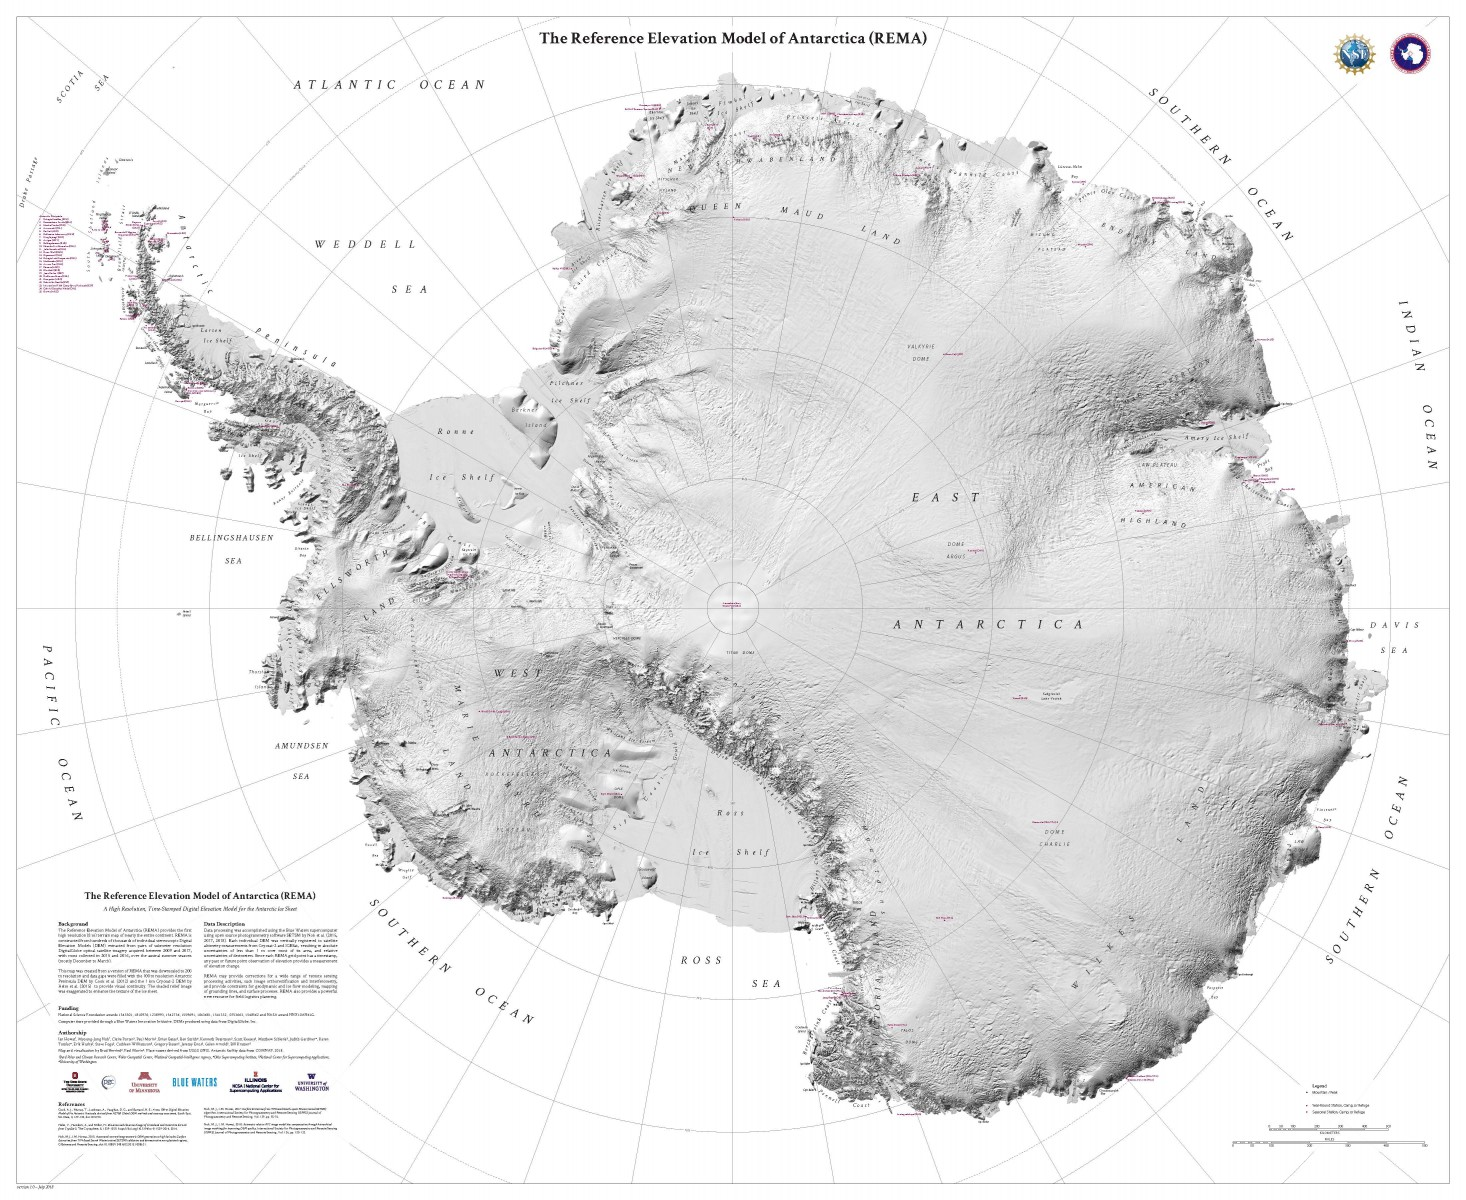 1920_referenceelevationmodelofantarctica-v1.0-draft-01-reduced002.jpg